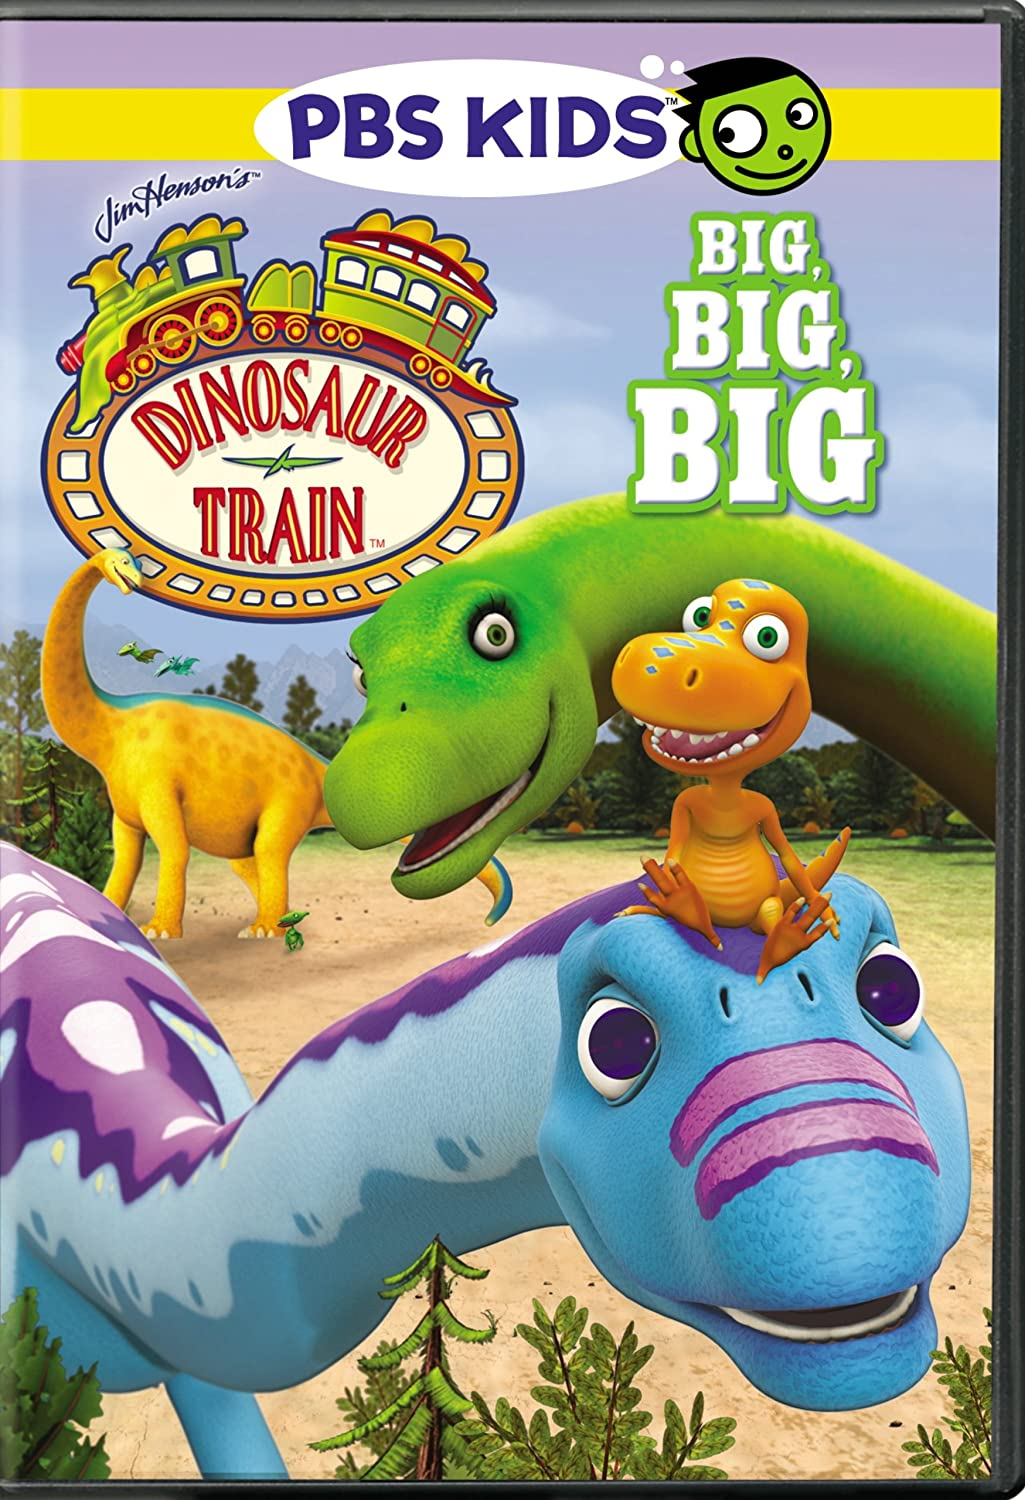 Dinosaur Train Apatosaurus Dinosaur Train Big  Big